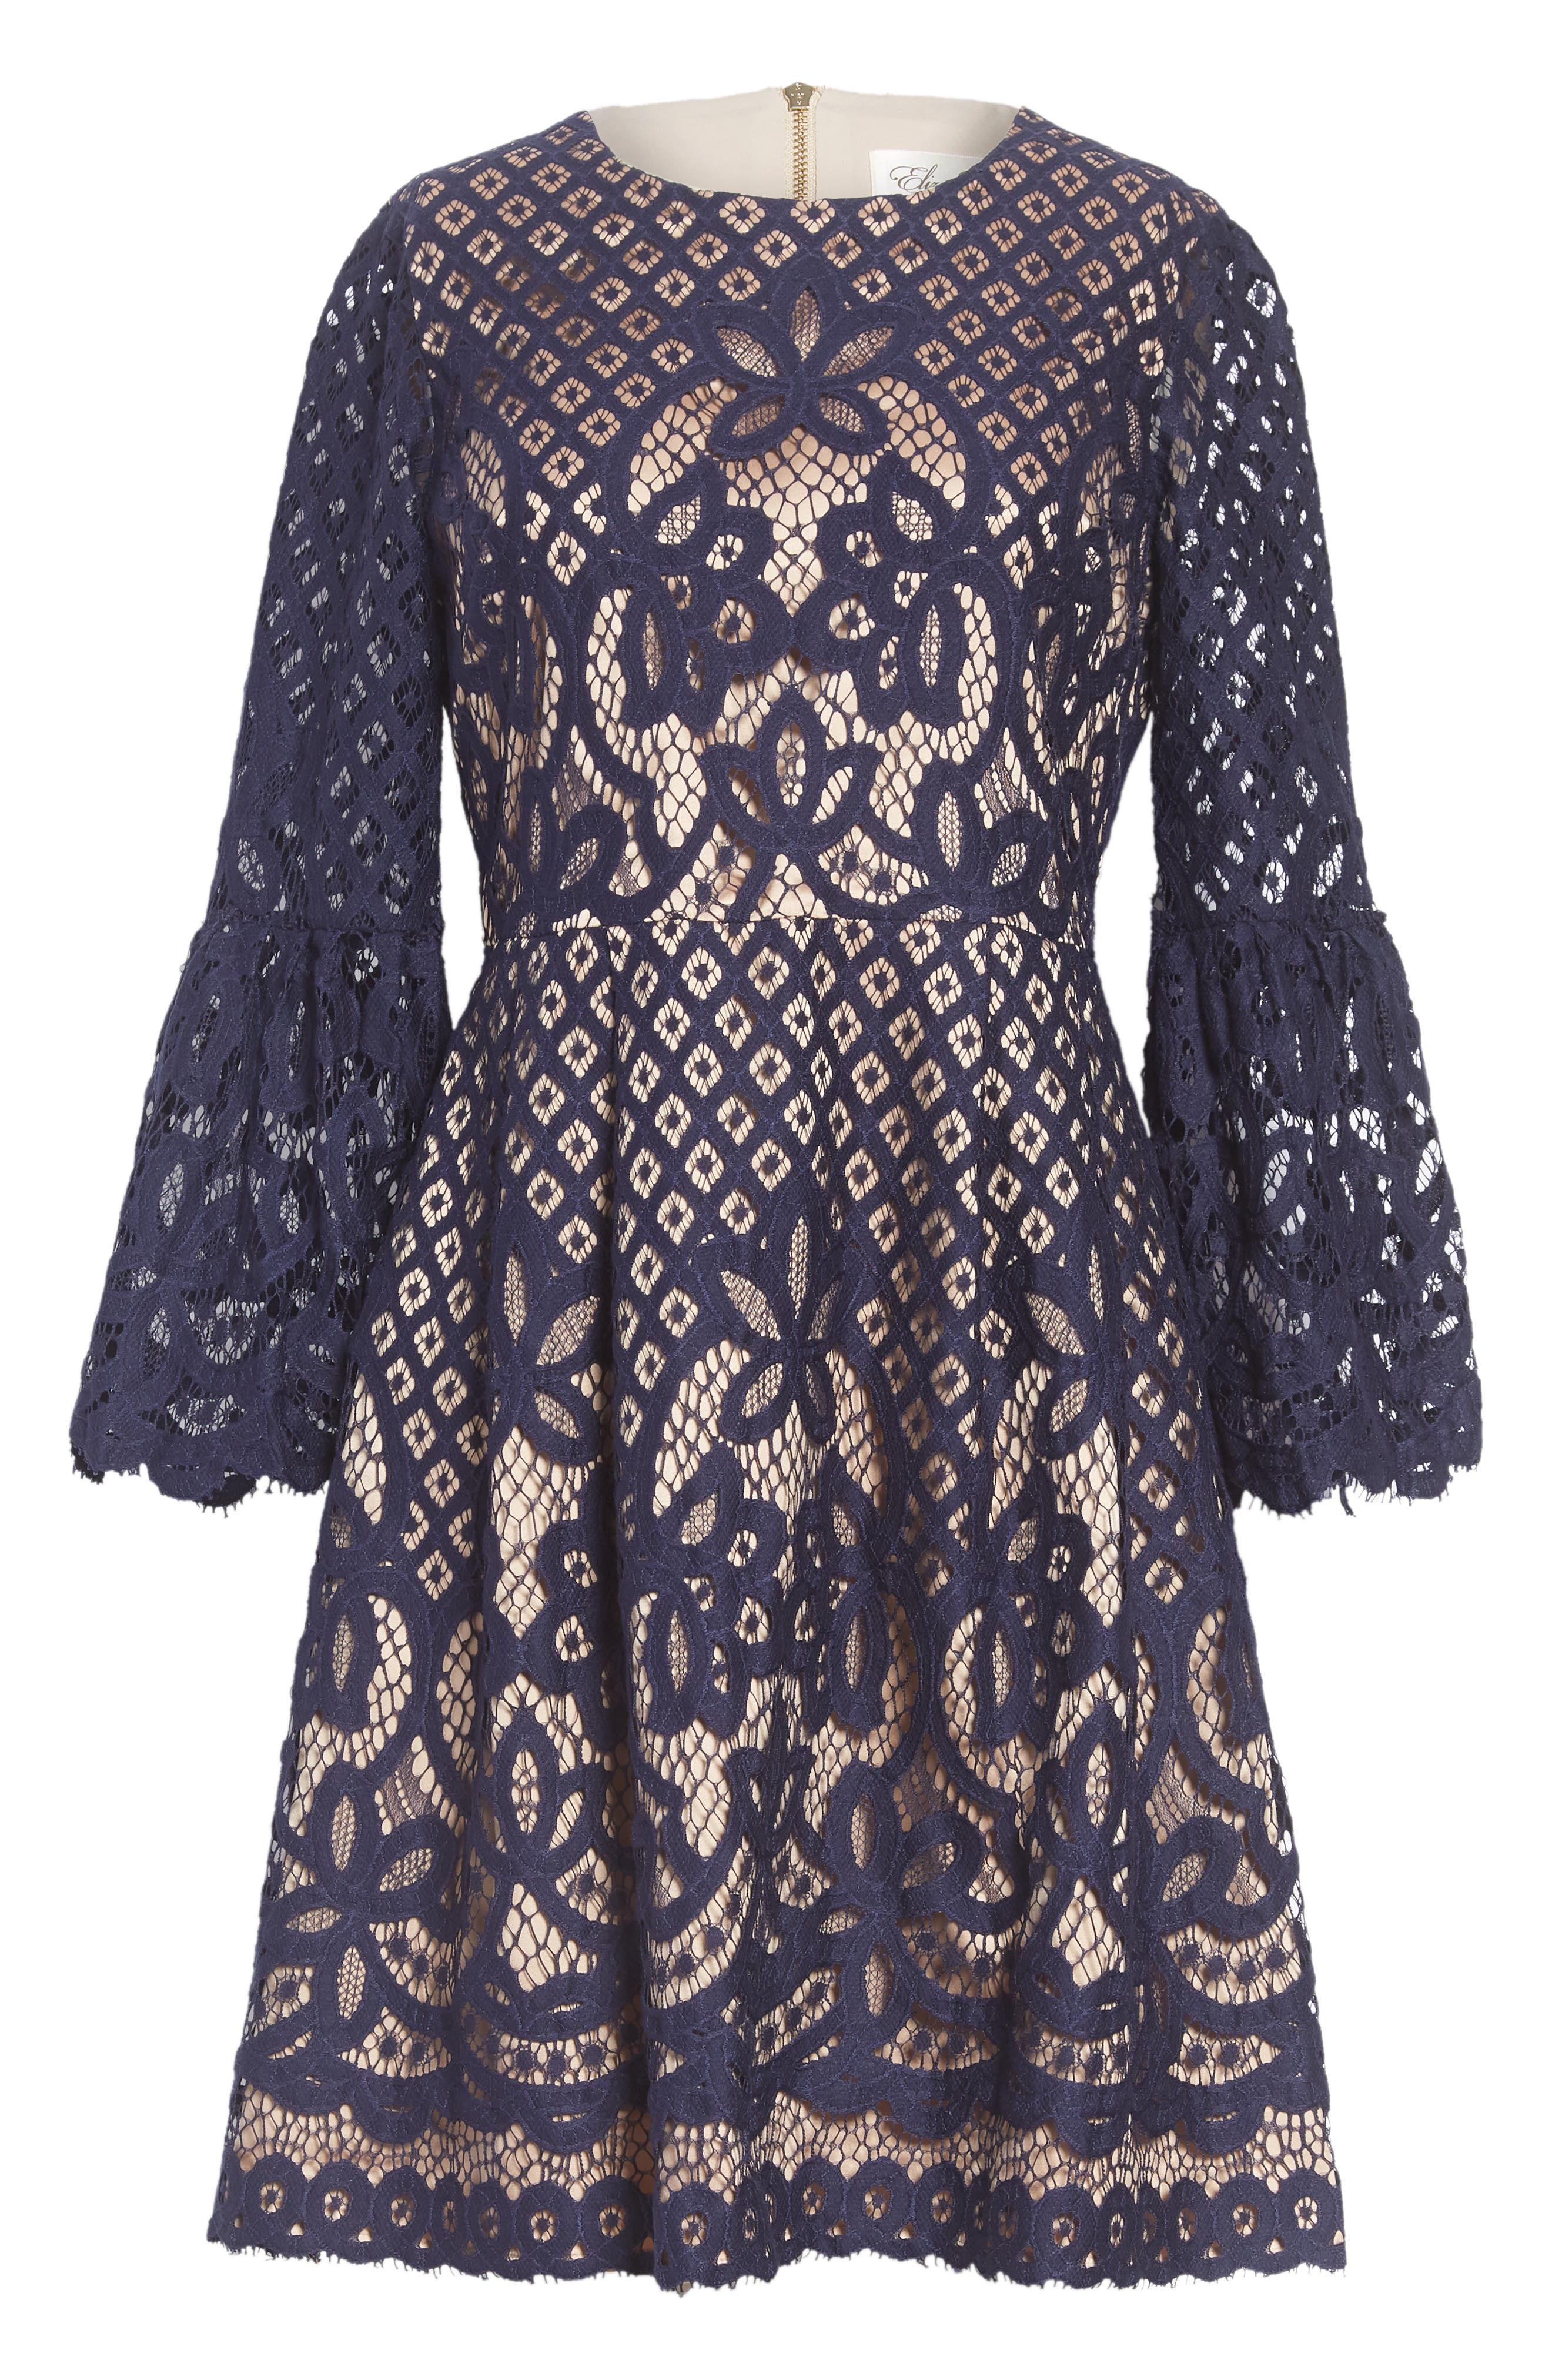 ELIZA J, Bell Sleeve Lace Fit & Flare Dress, Main thumbnail 1, color, 410